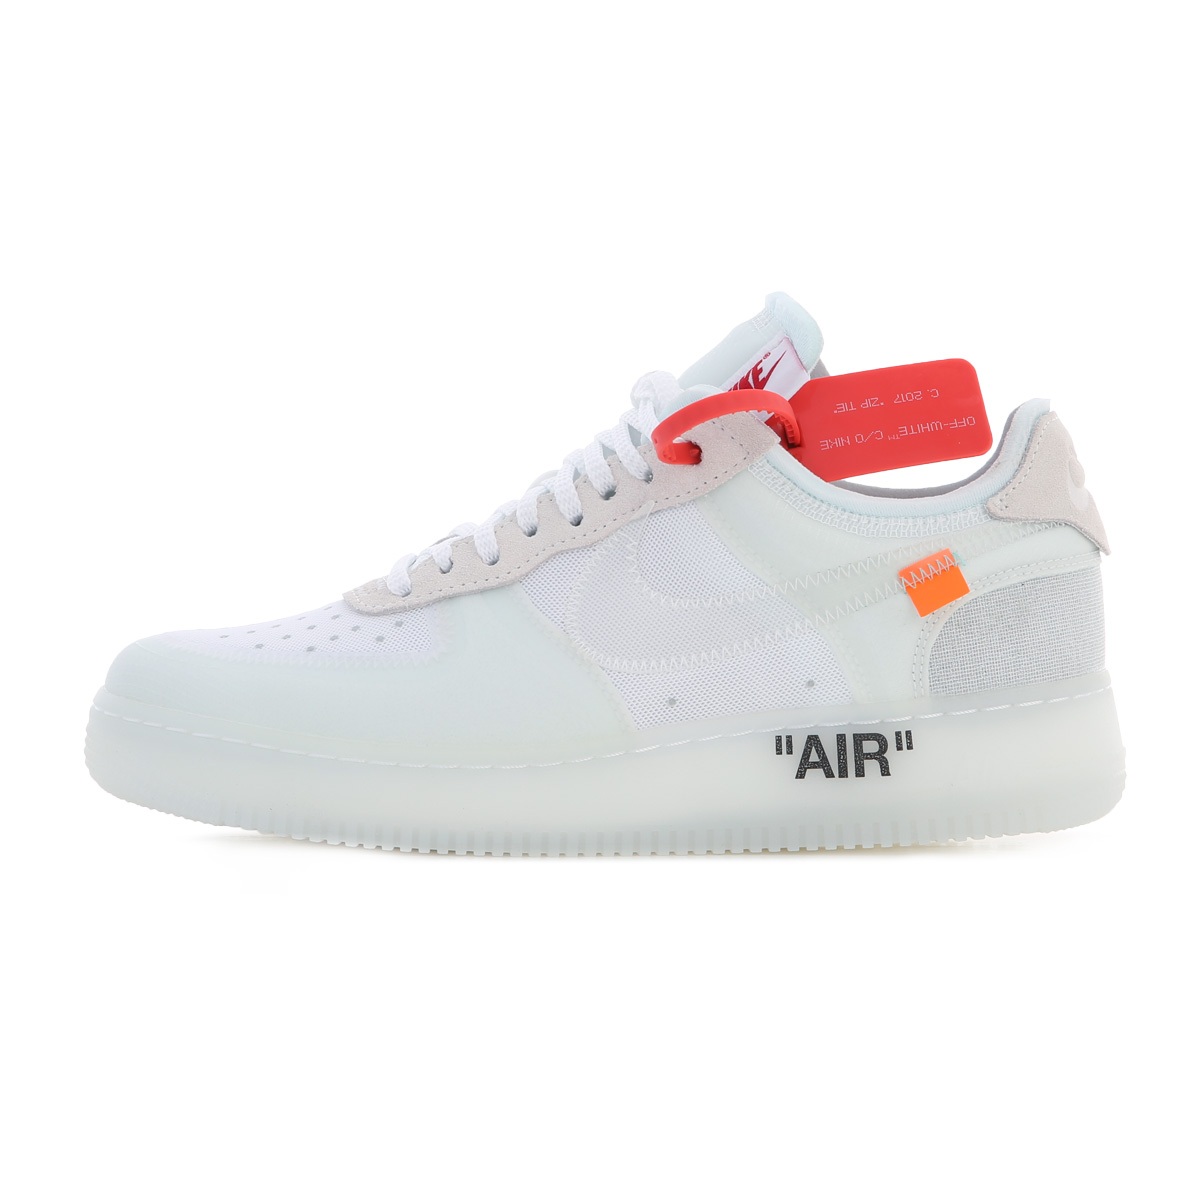 3 Air Force Off-White.jpg